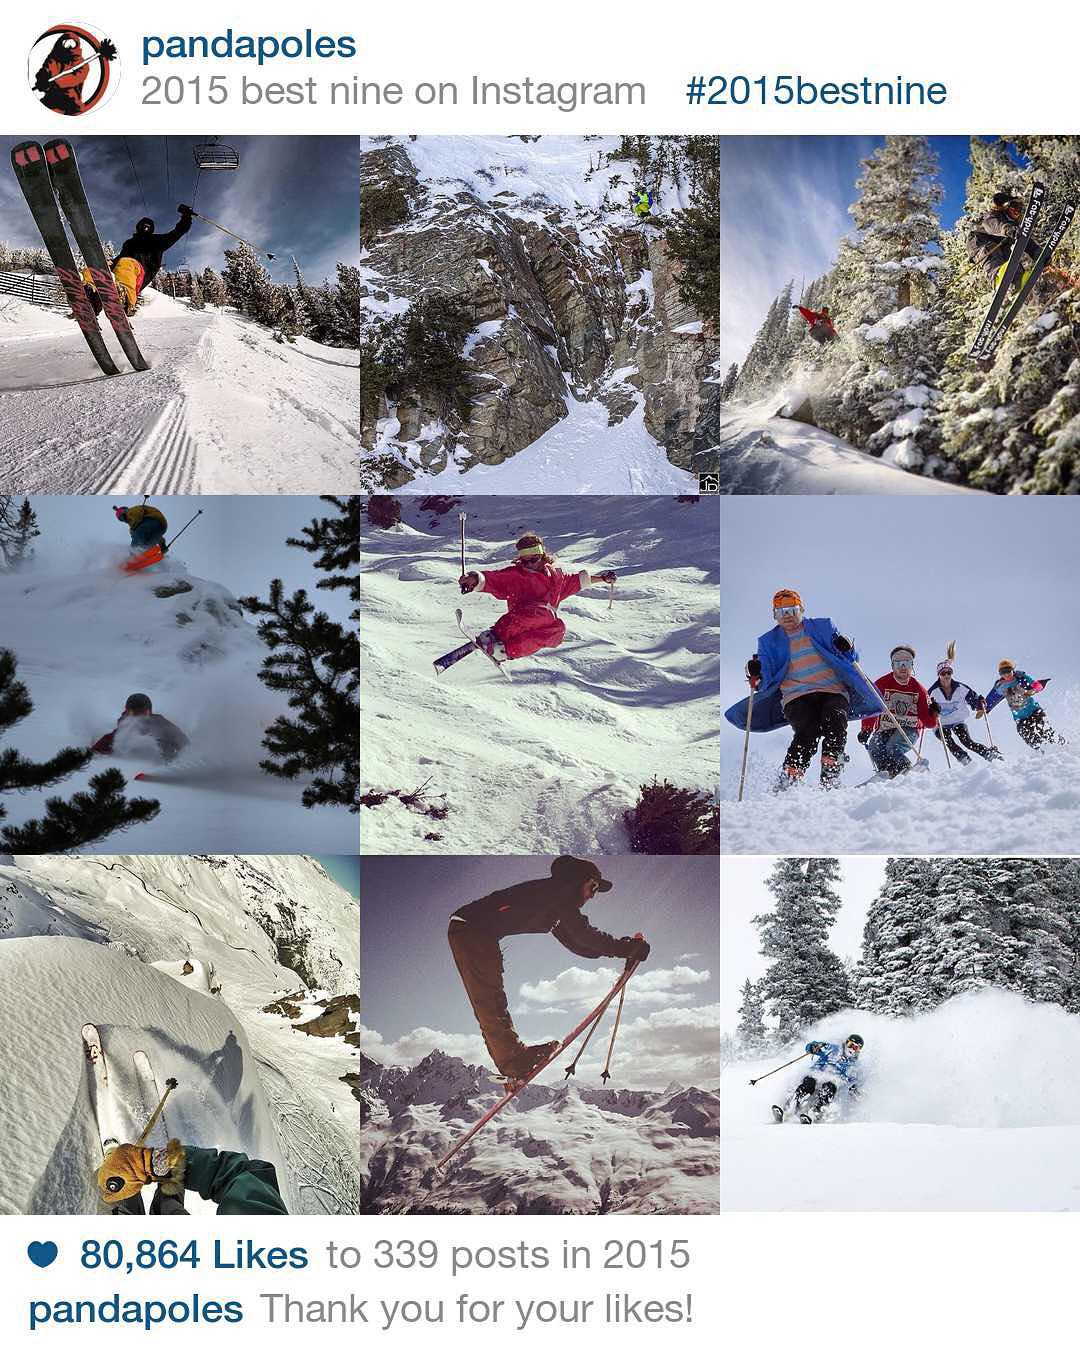 Whoa! 2015 has been a wild ride! Amidst an uncertain time in the ski industry, we've had the wind knocked out of our sails a couple times this past year. And yet, because of our amazing Tribe of creators, athletes, customers, vendors, supporters, and...